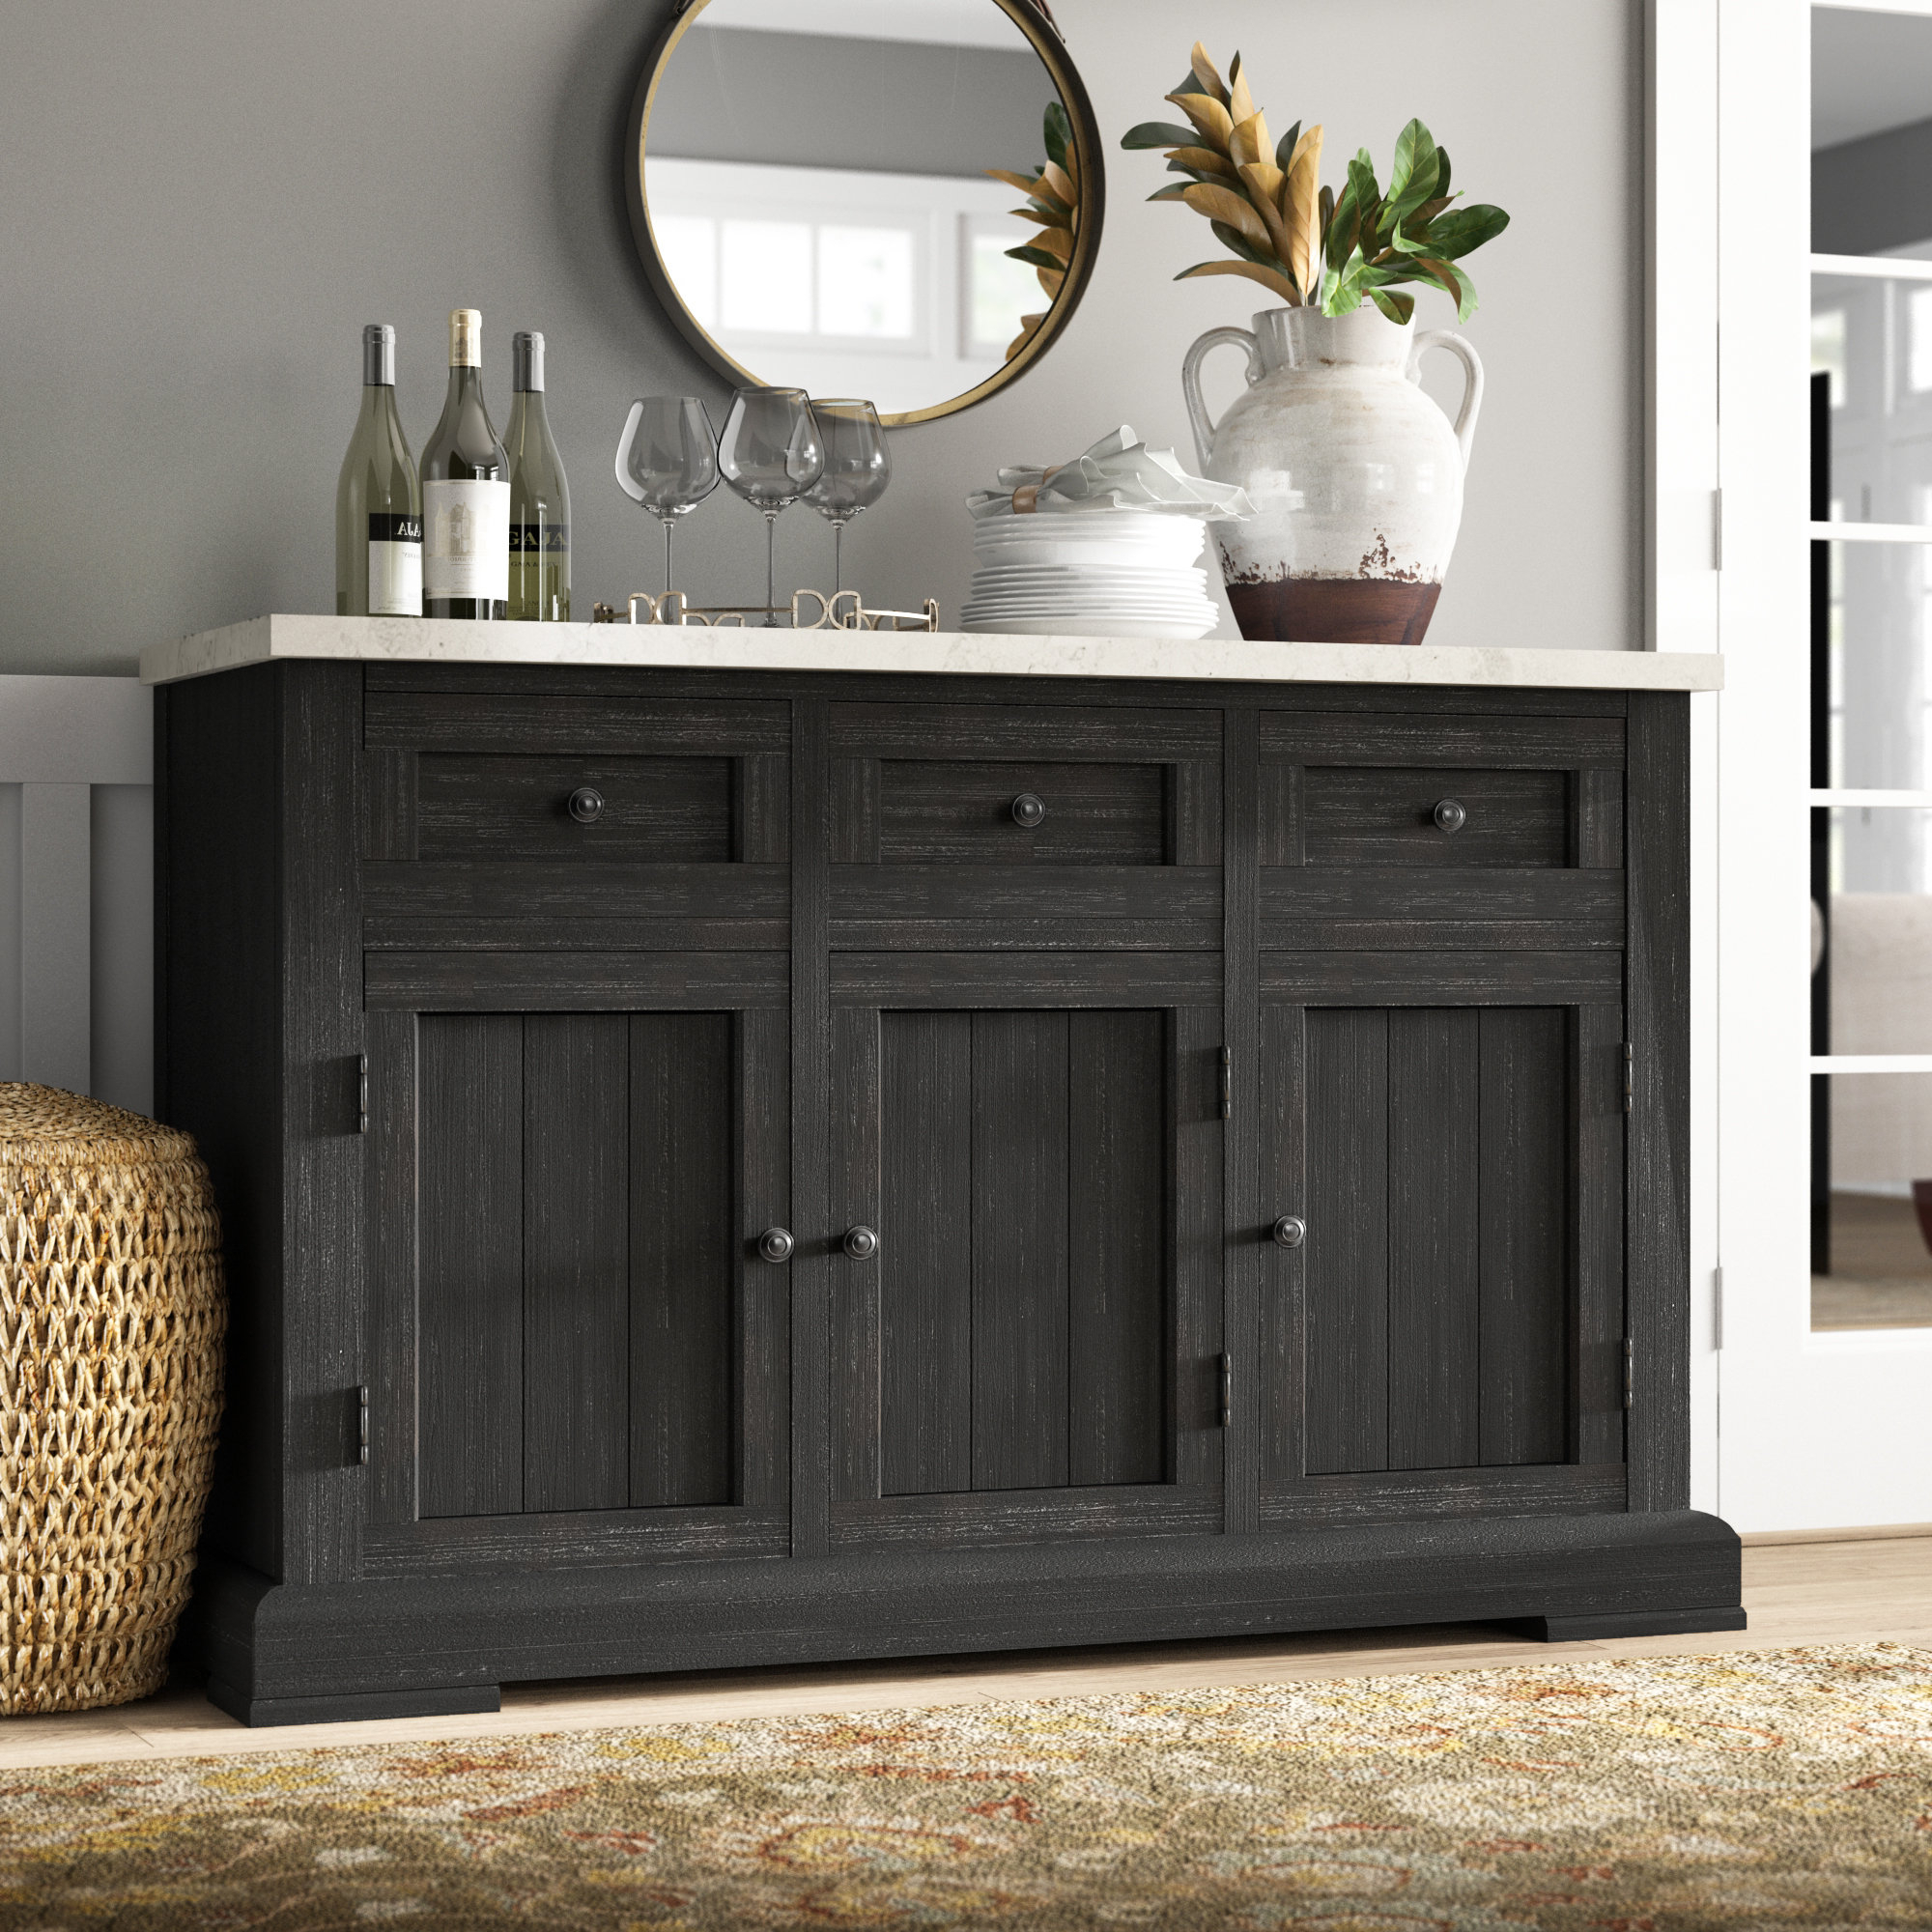 Newest Colborne Sideboards Intended For Ballintoy Wooden Sideboard (Gallery 18 of 20)